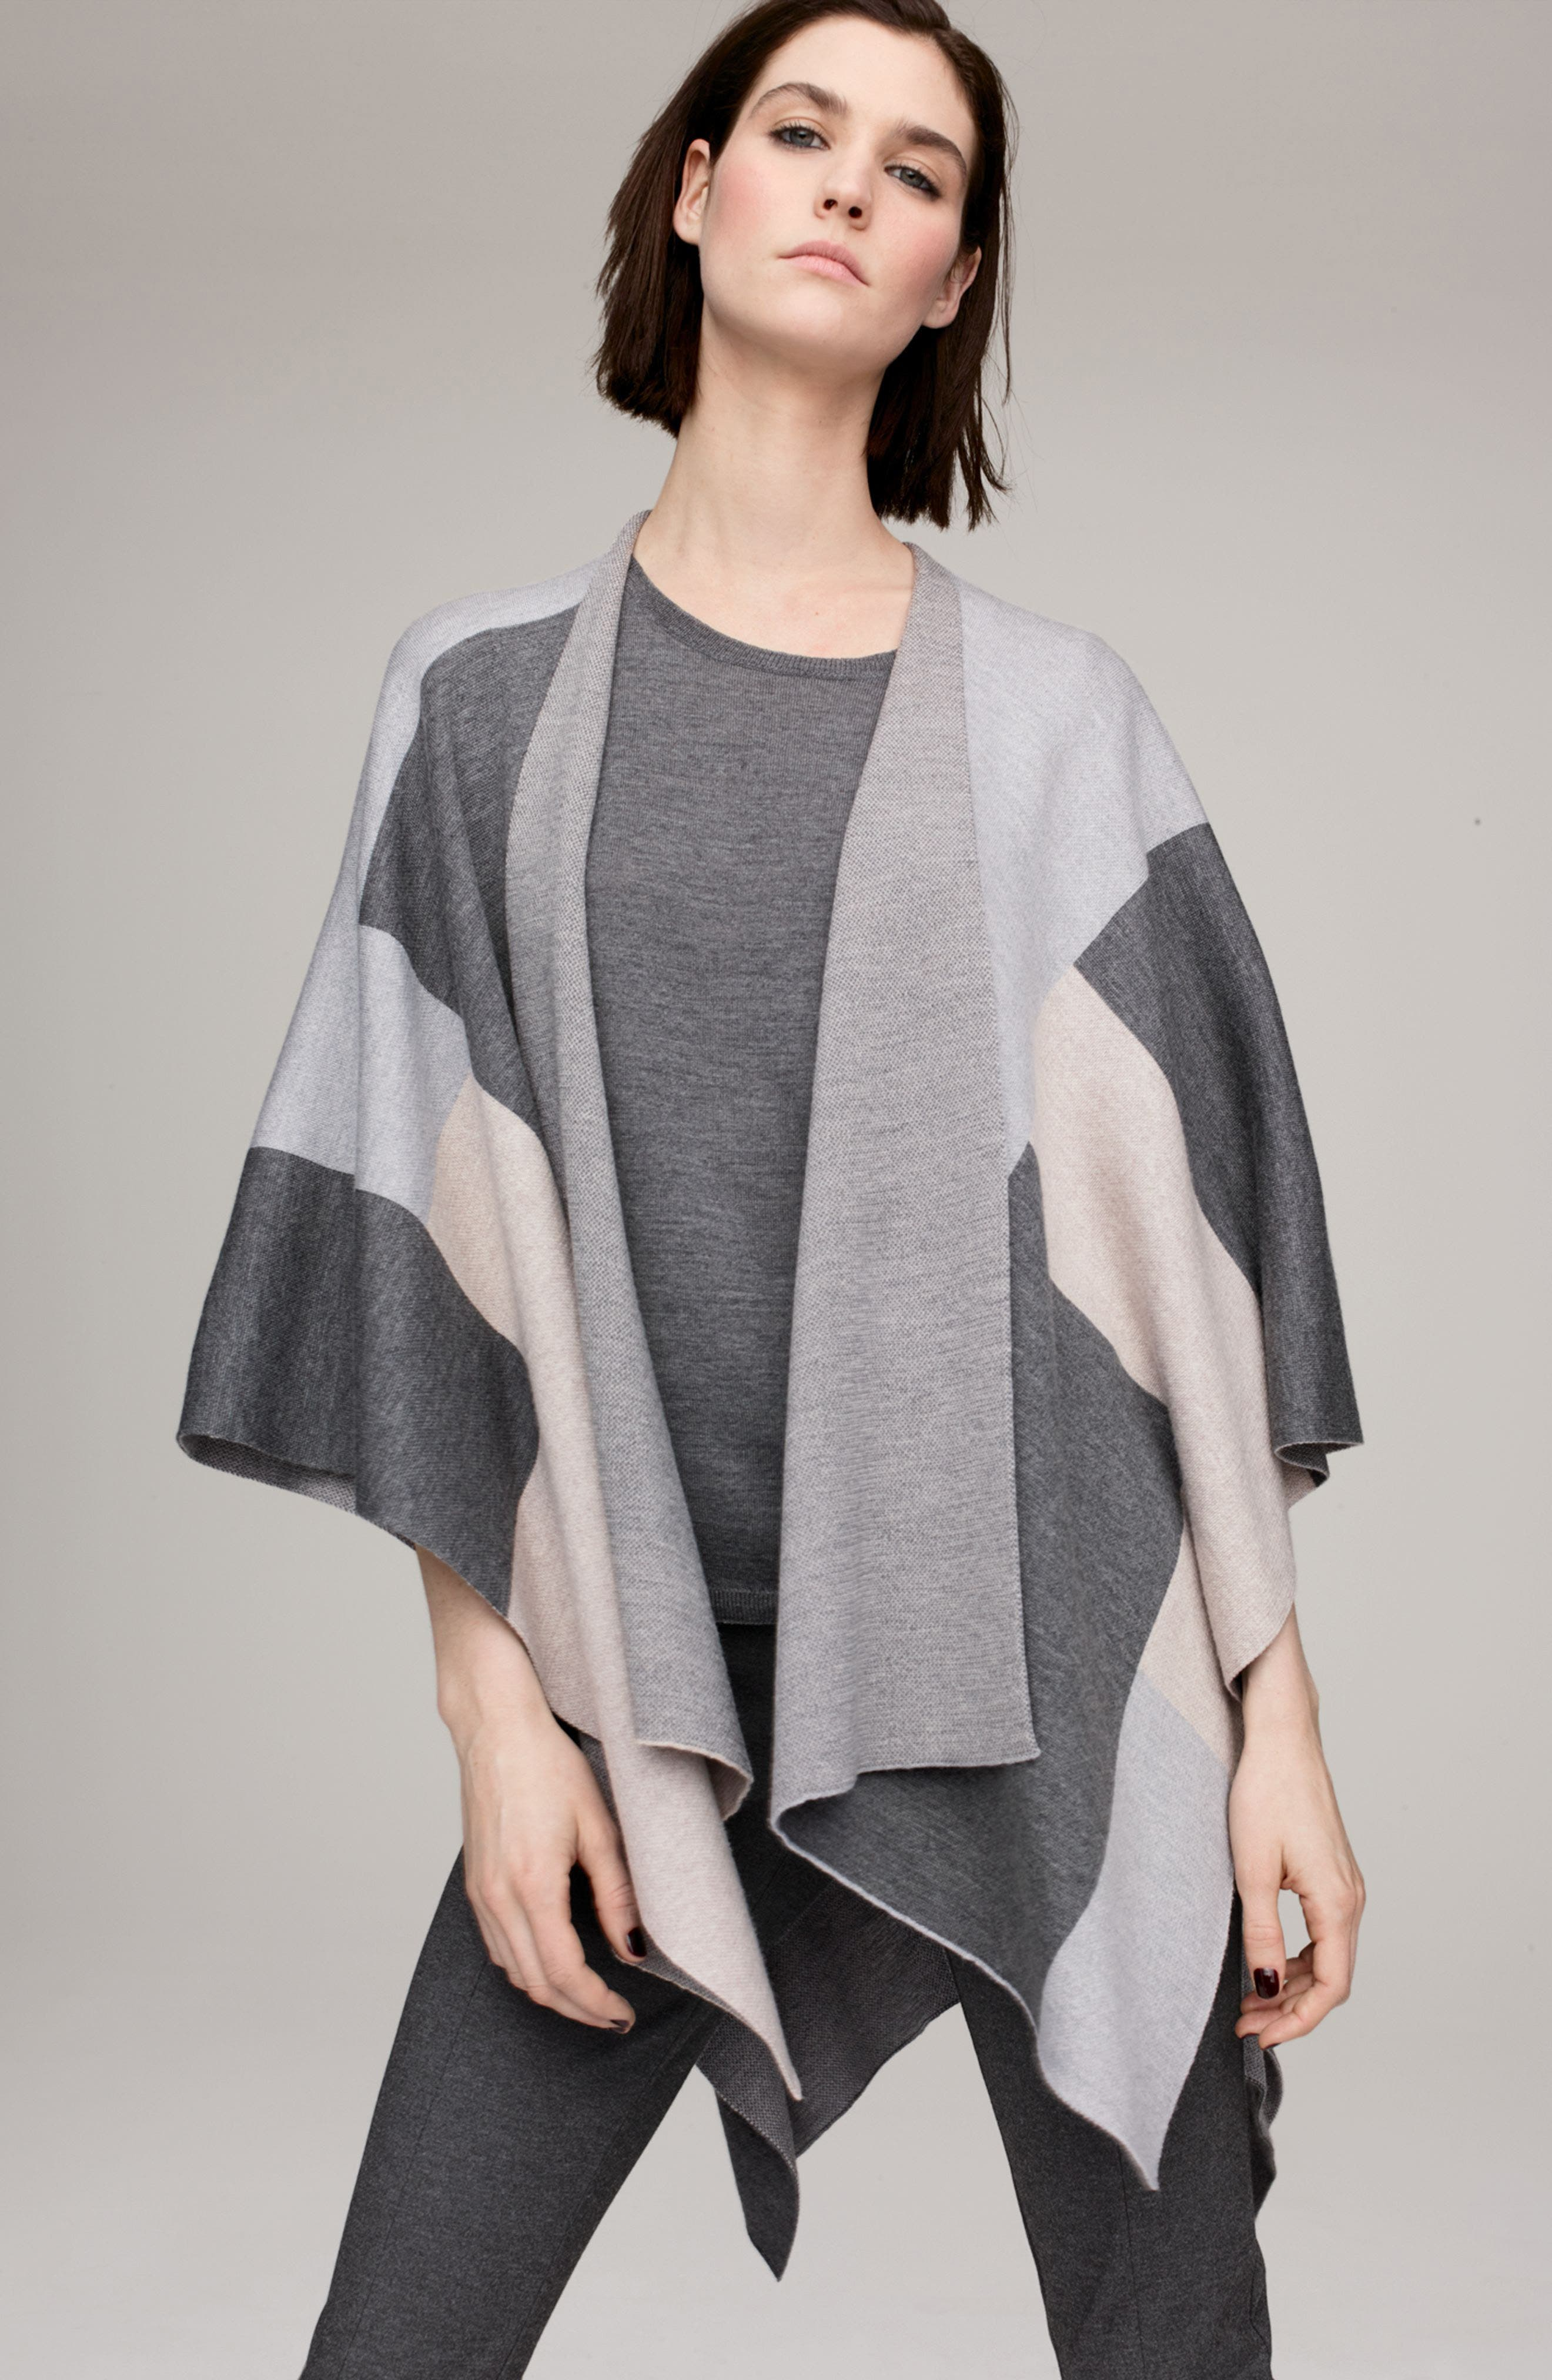 Eileen Fisher Serape Wrap, Tee & Pants Outfit with Accessories